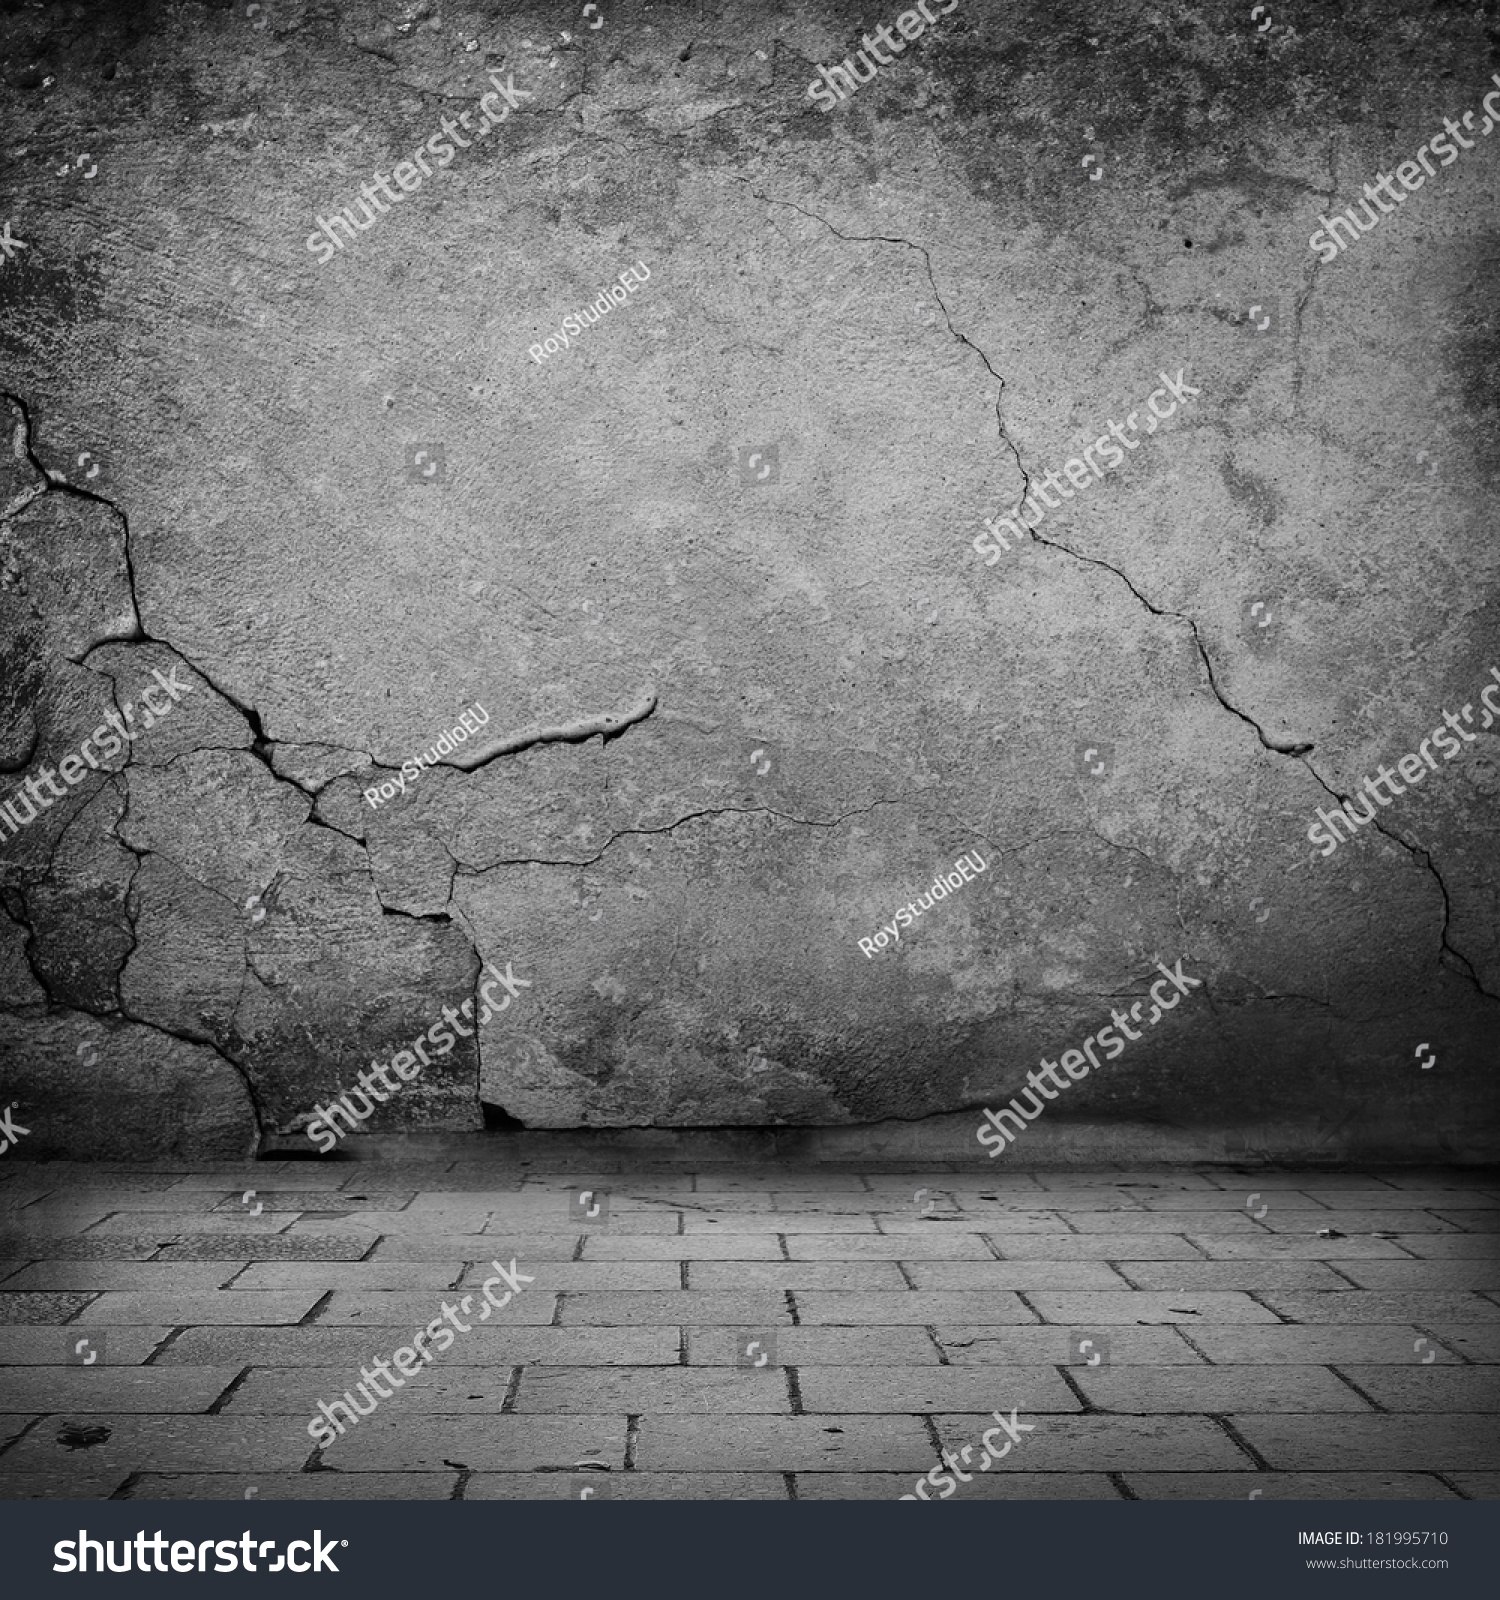 Sad Tumblr Quotes About Love: Black White Grunge Background Old Stone Stock Photo